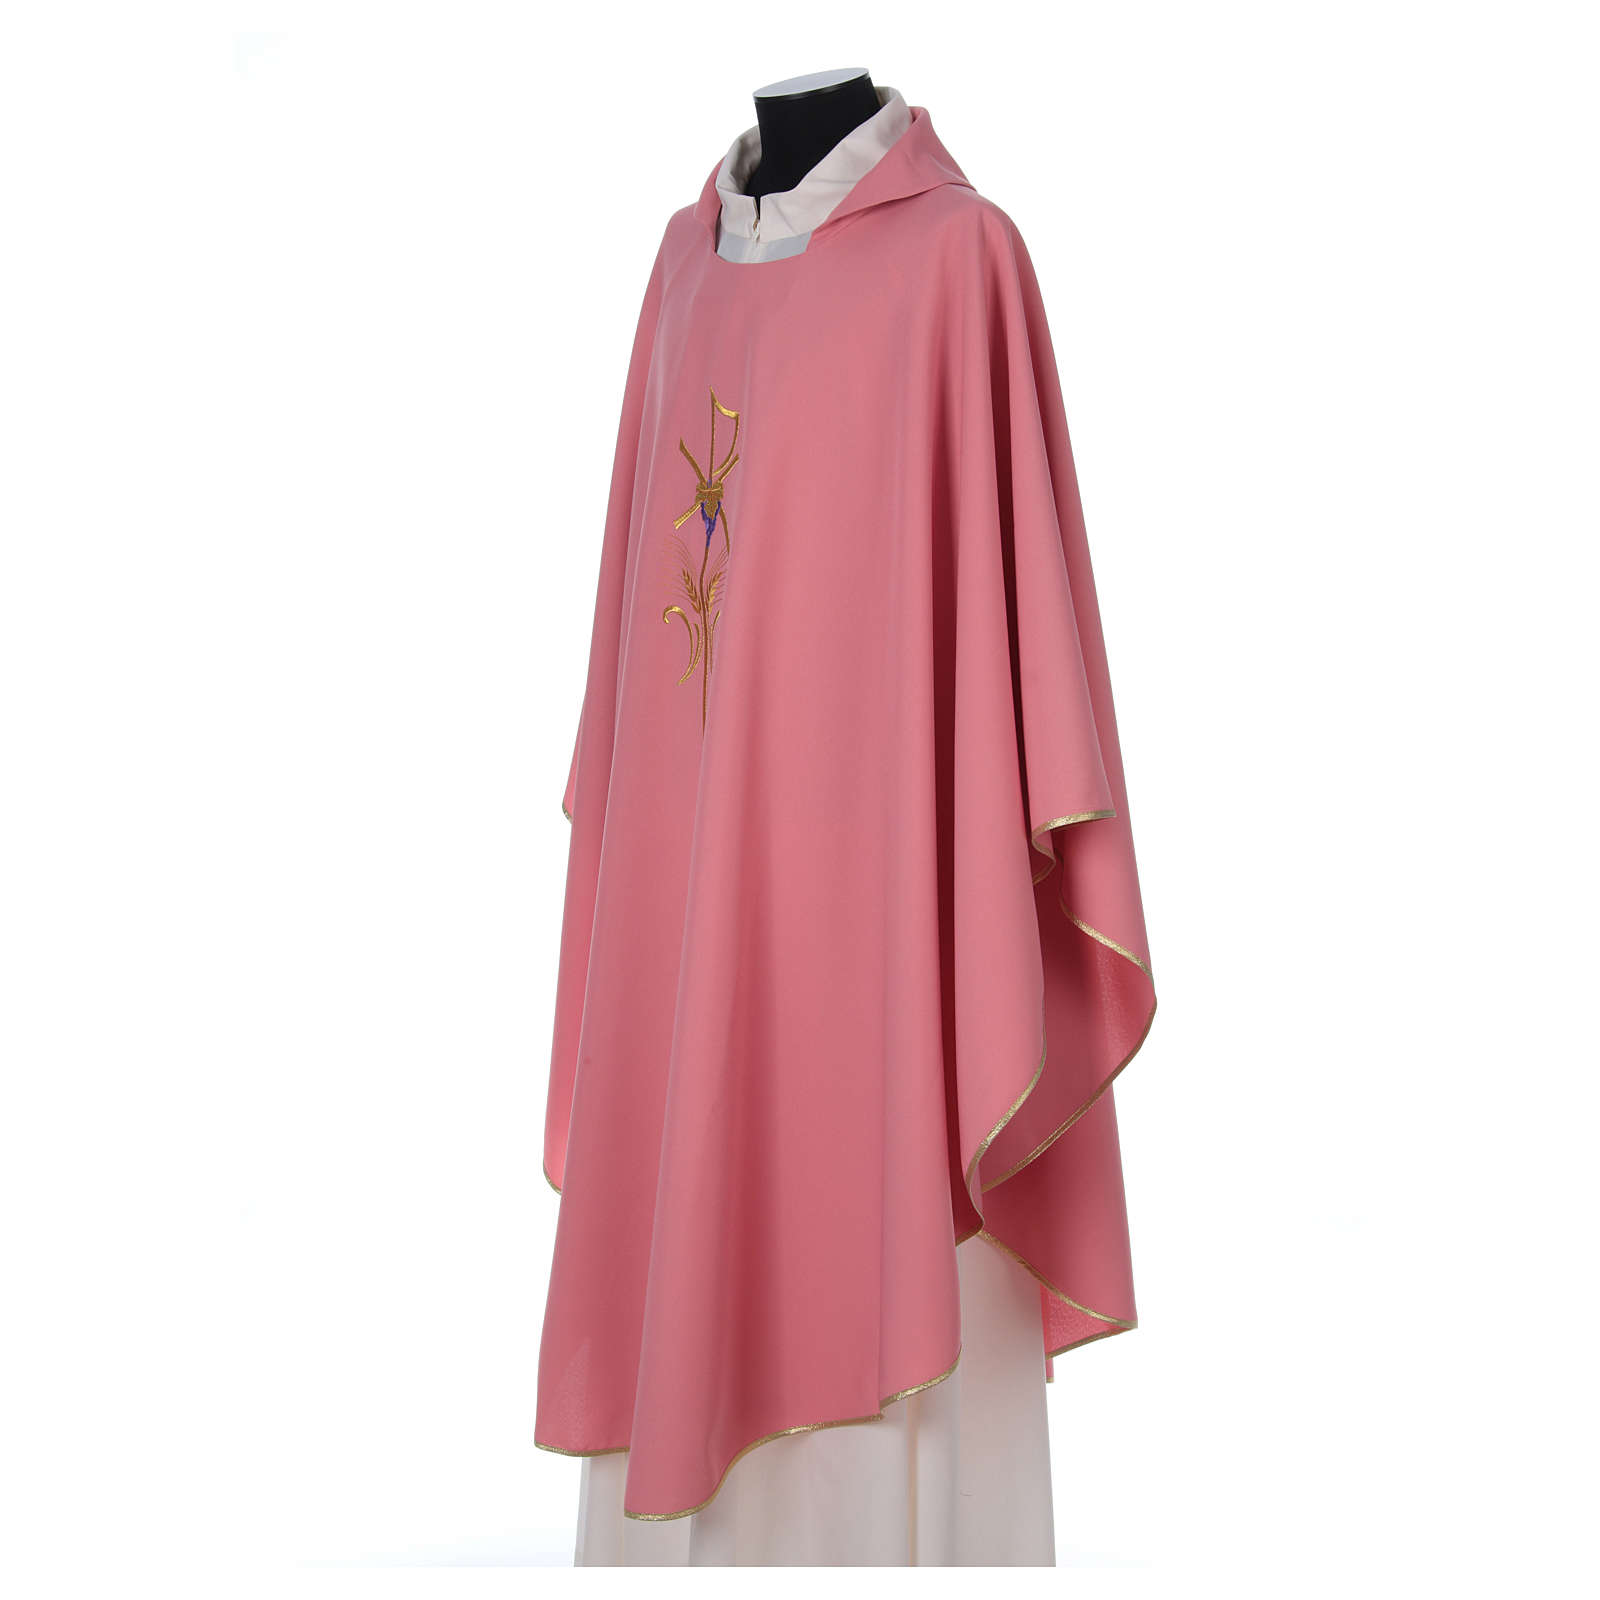 Pink Catholic Priest Chasuble with cross wheat and grapes in polyester 4